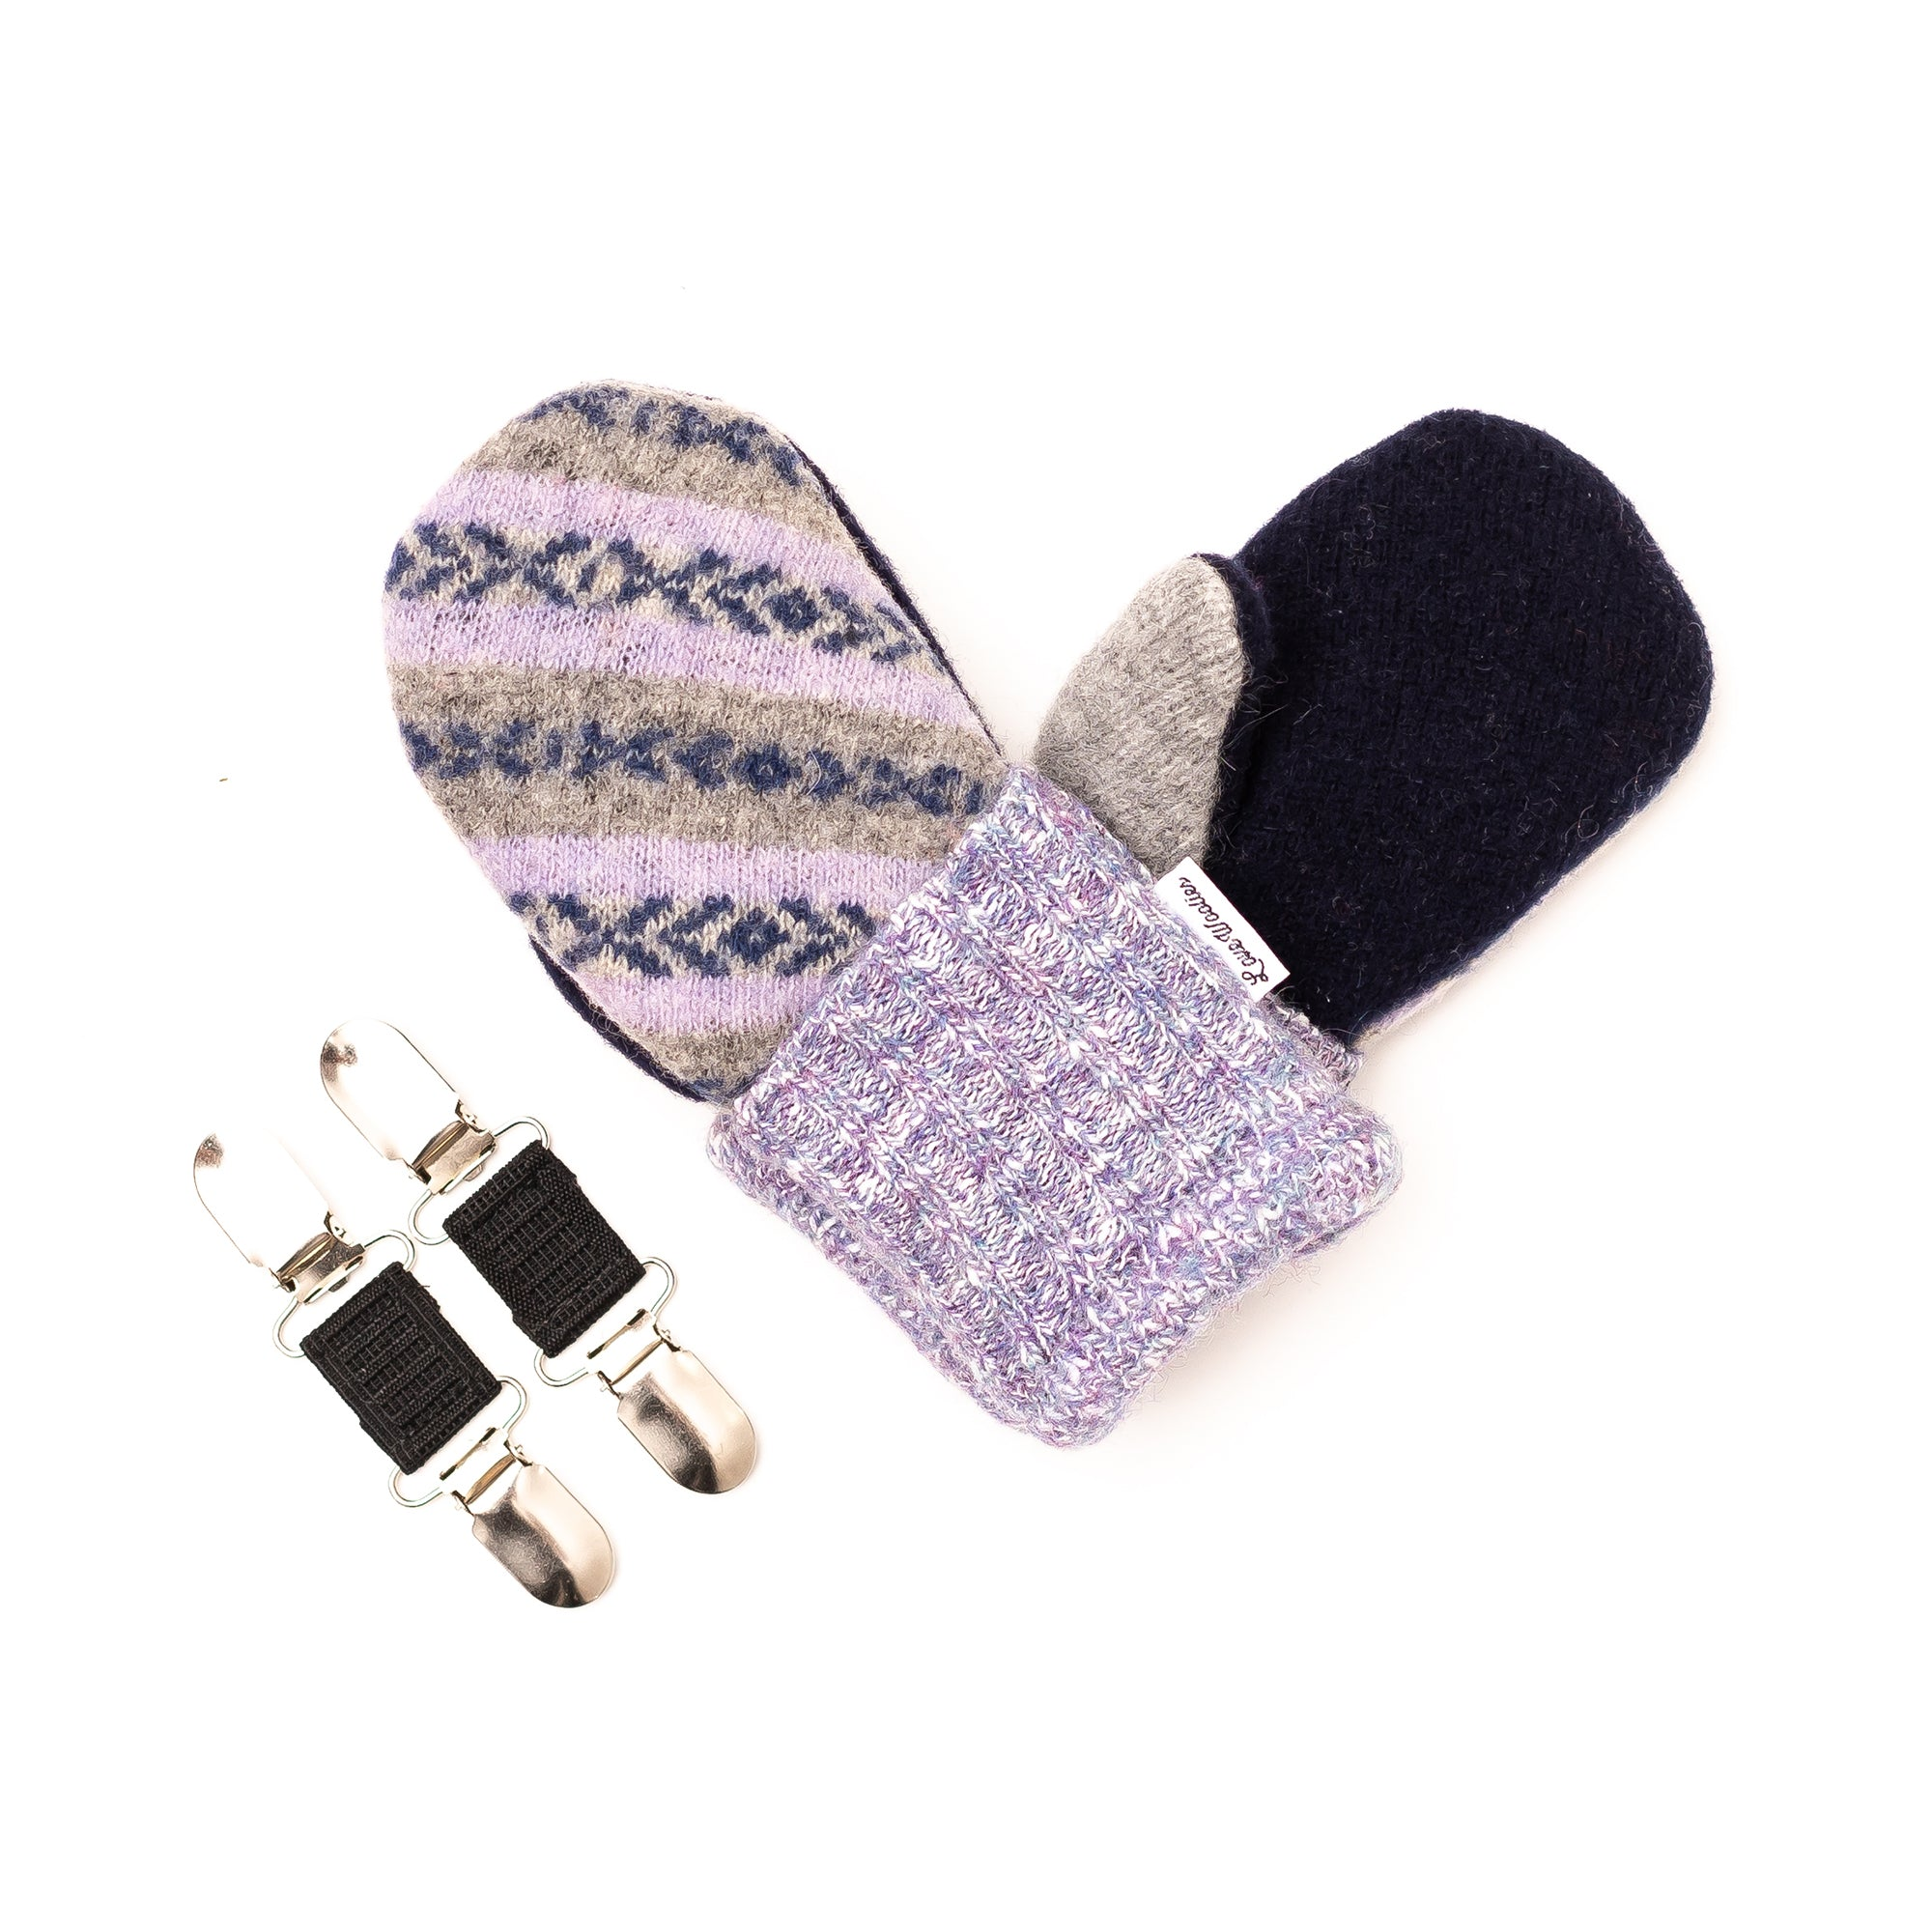 Small Kid's Wool Sweater Mittens | Lavender Lovey